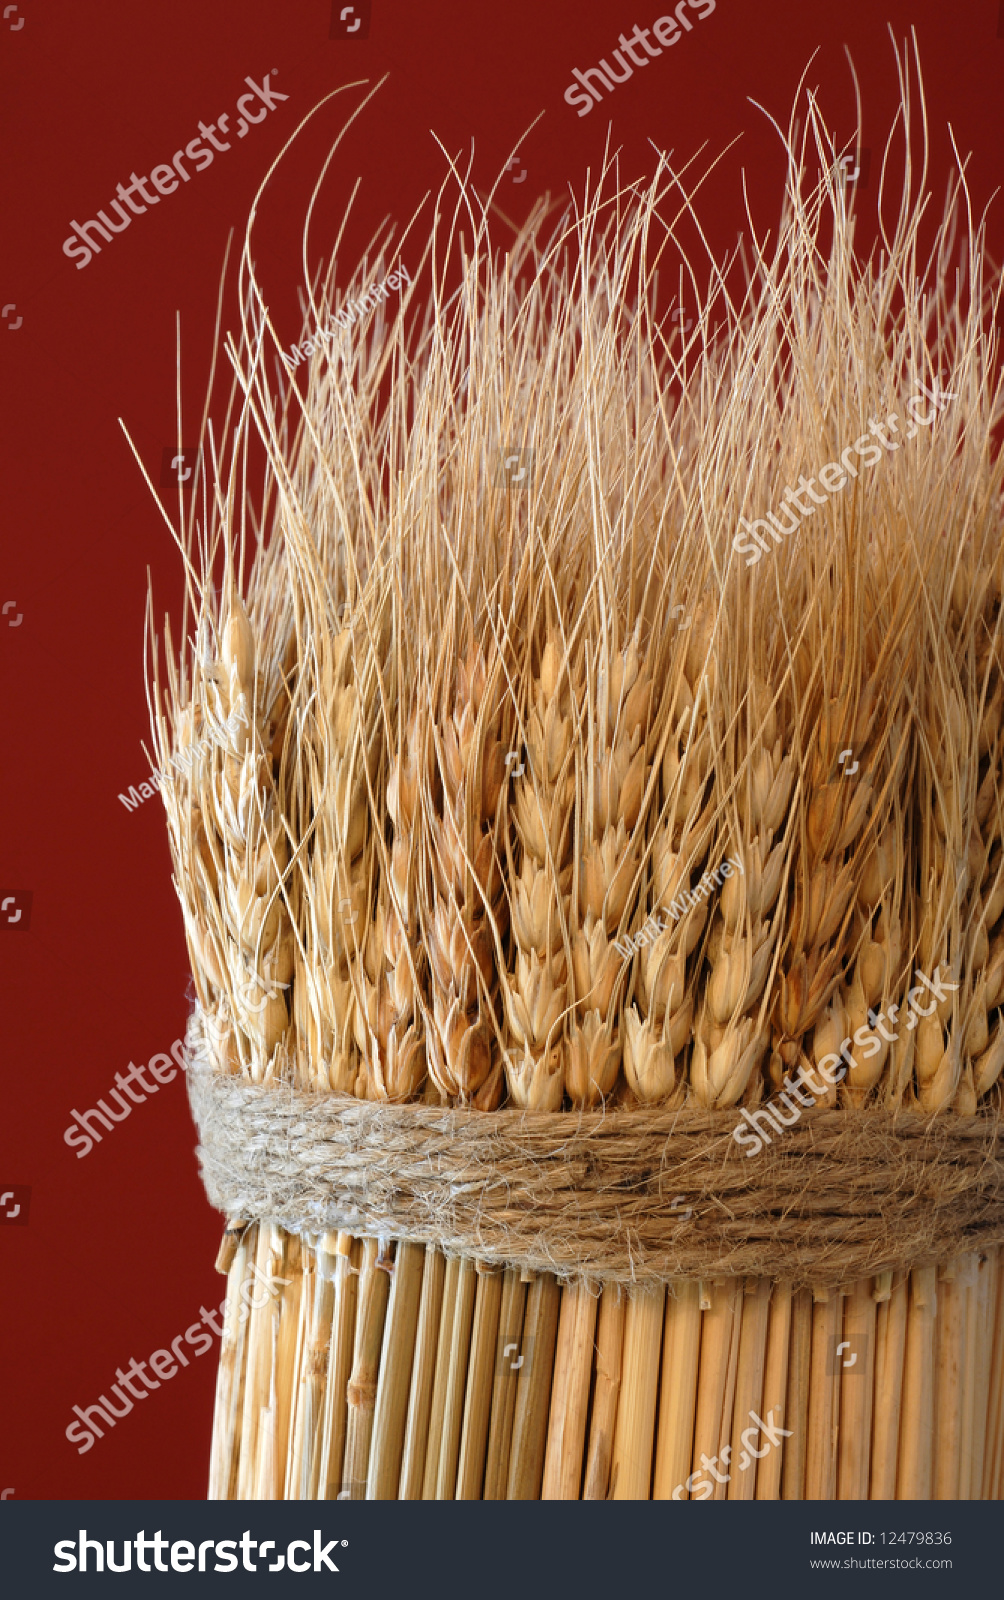 stock-photo-sheaf-of-wheat-against-a-red